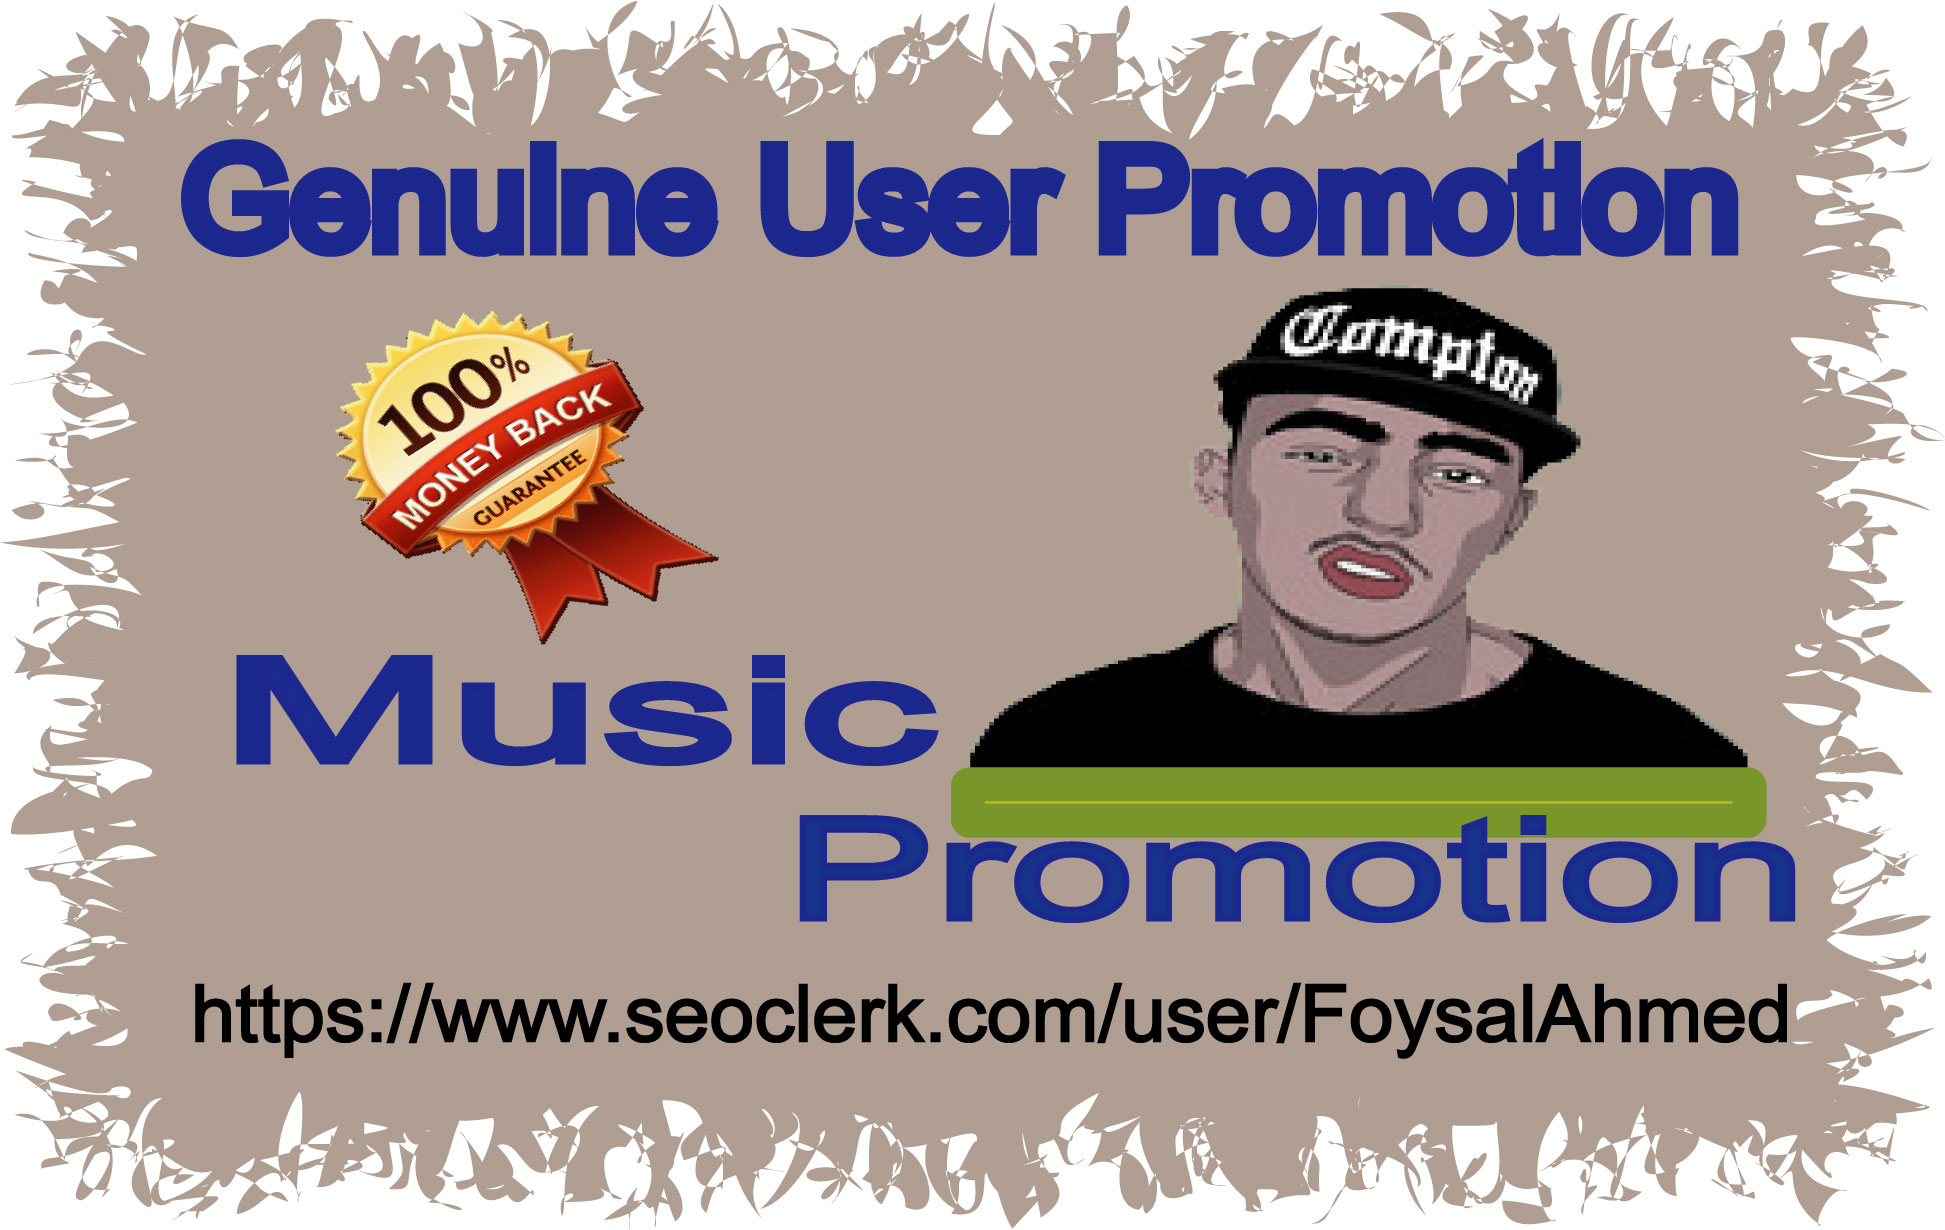 Music Promotion 900K USA MUSIC PLAY 1000 Llke & 500 Re-post & 50 Manual C0mments For Your Track